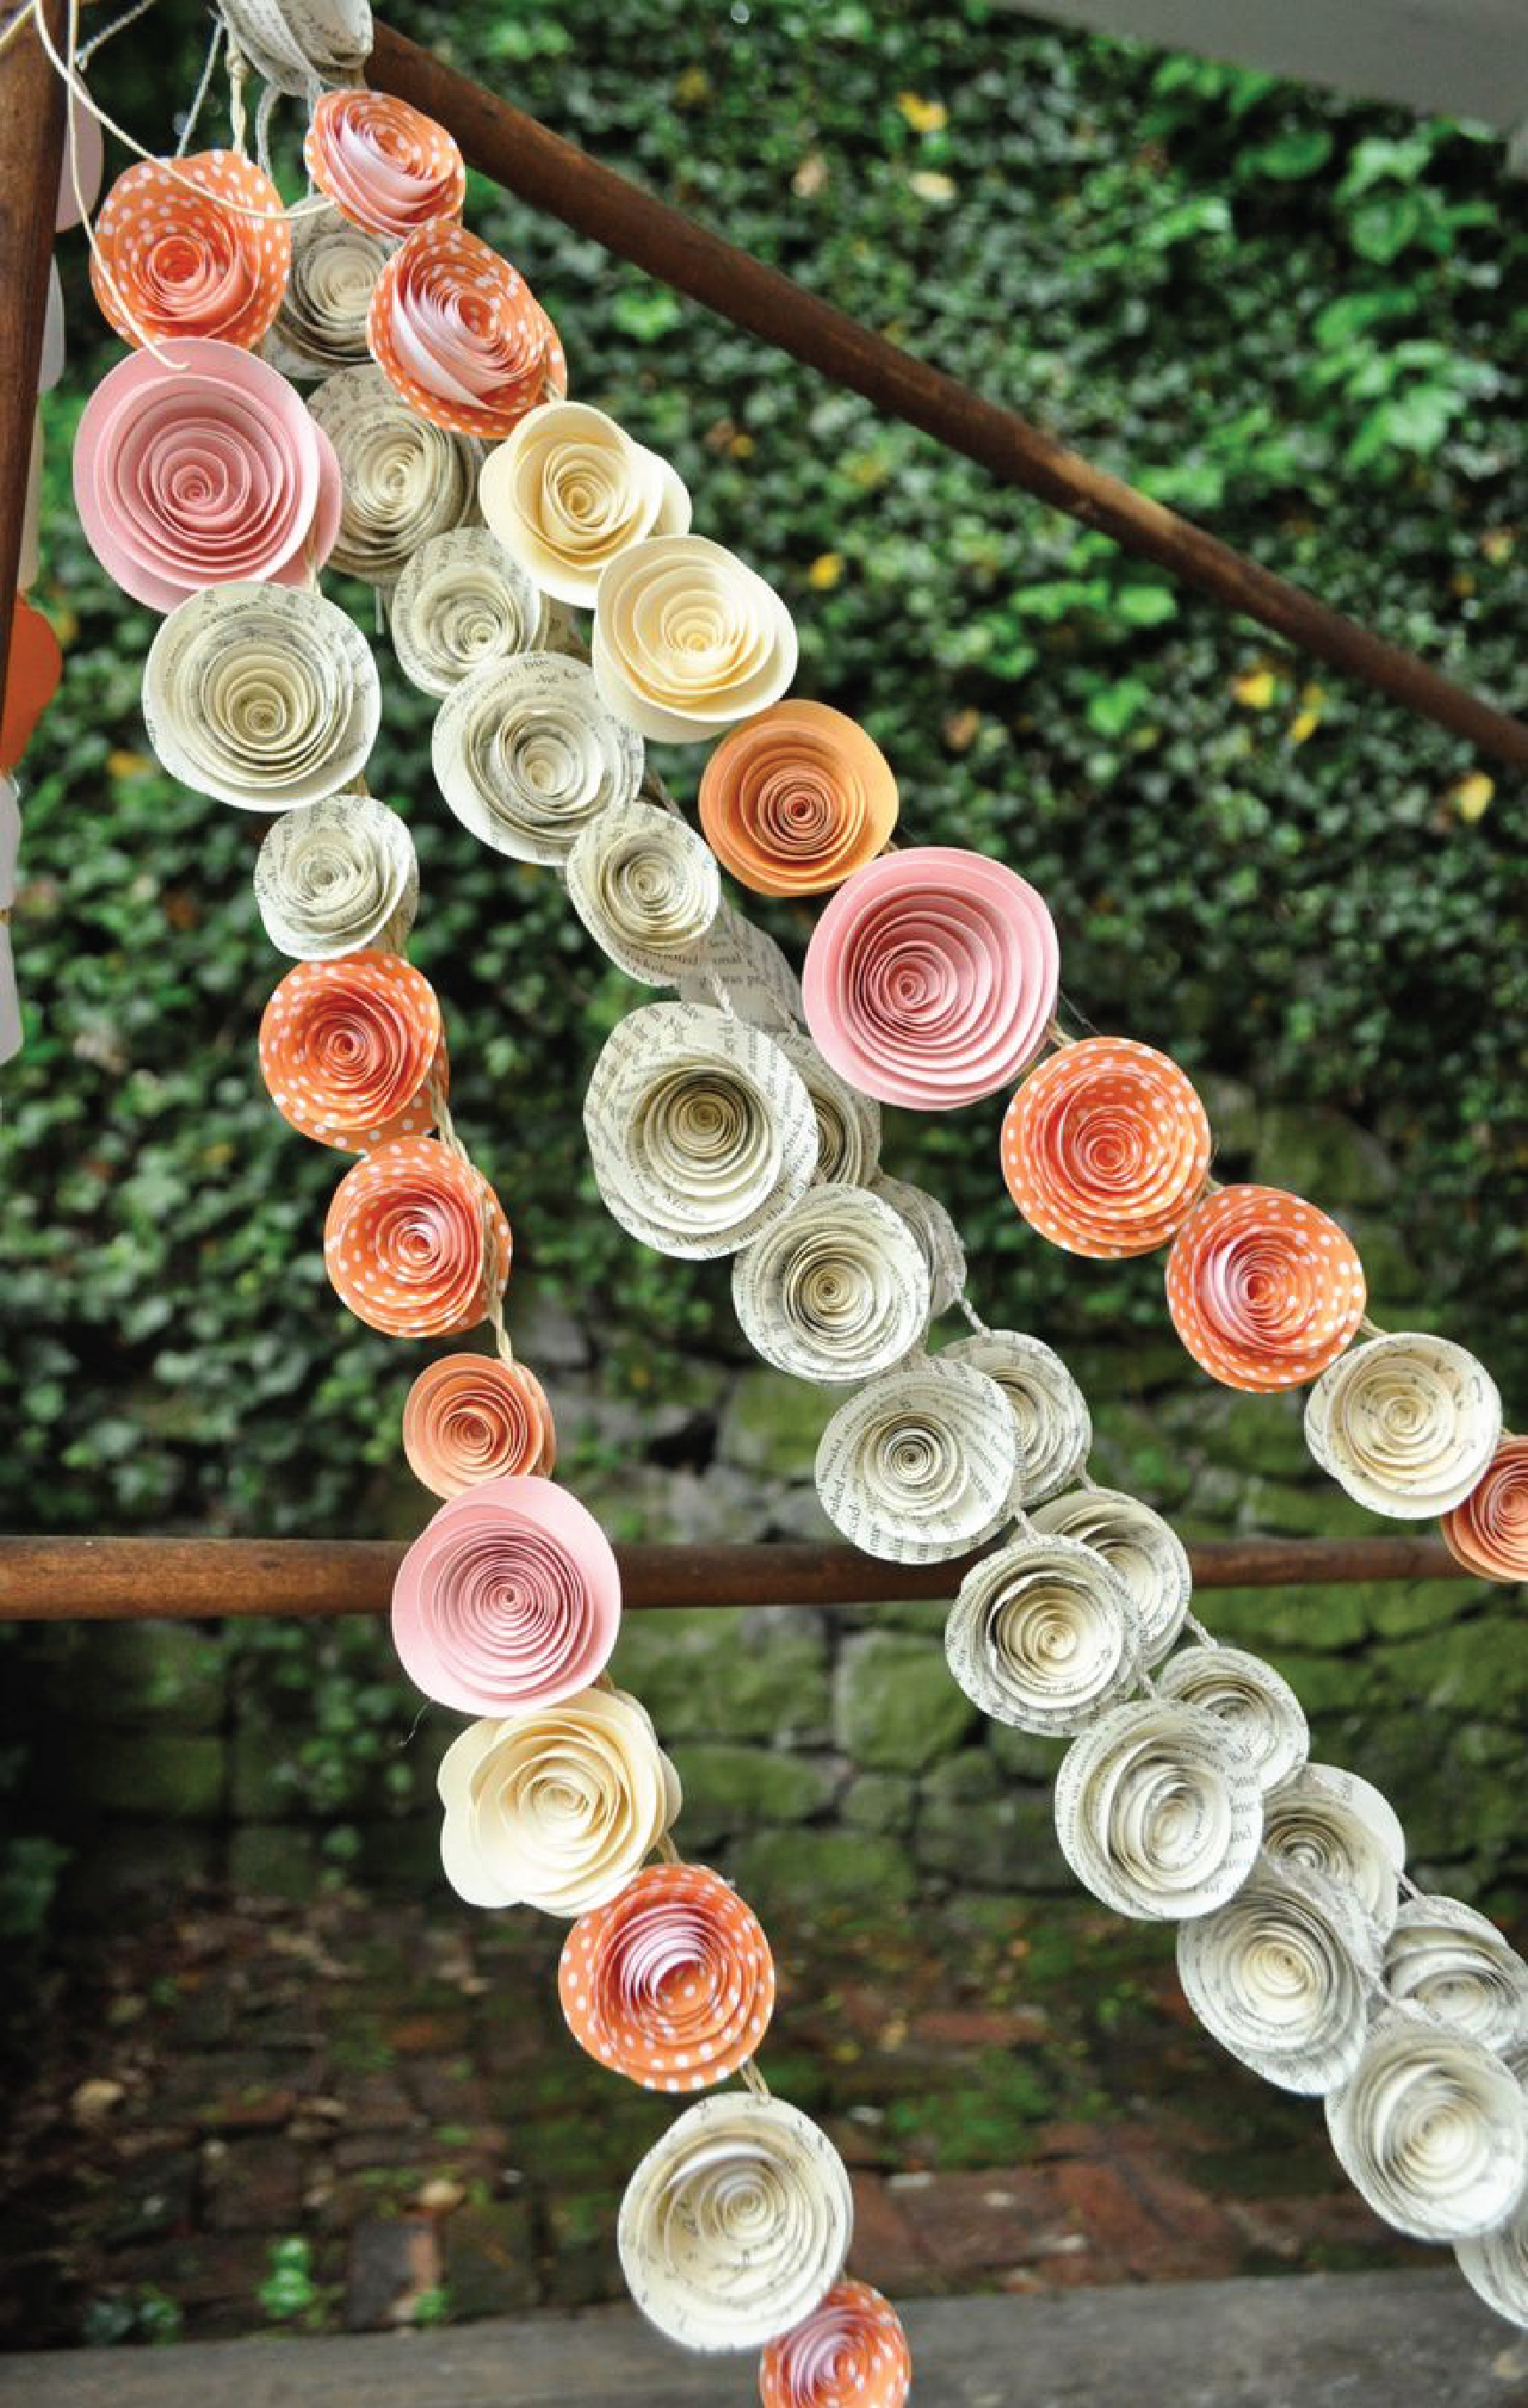 Garland from Lille Syster